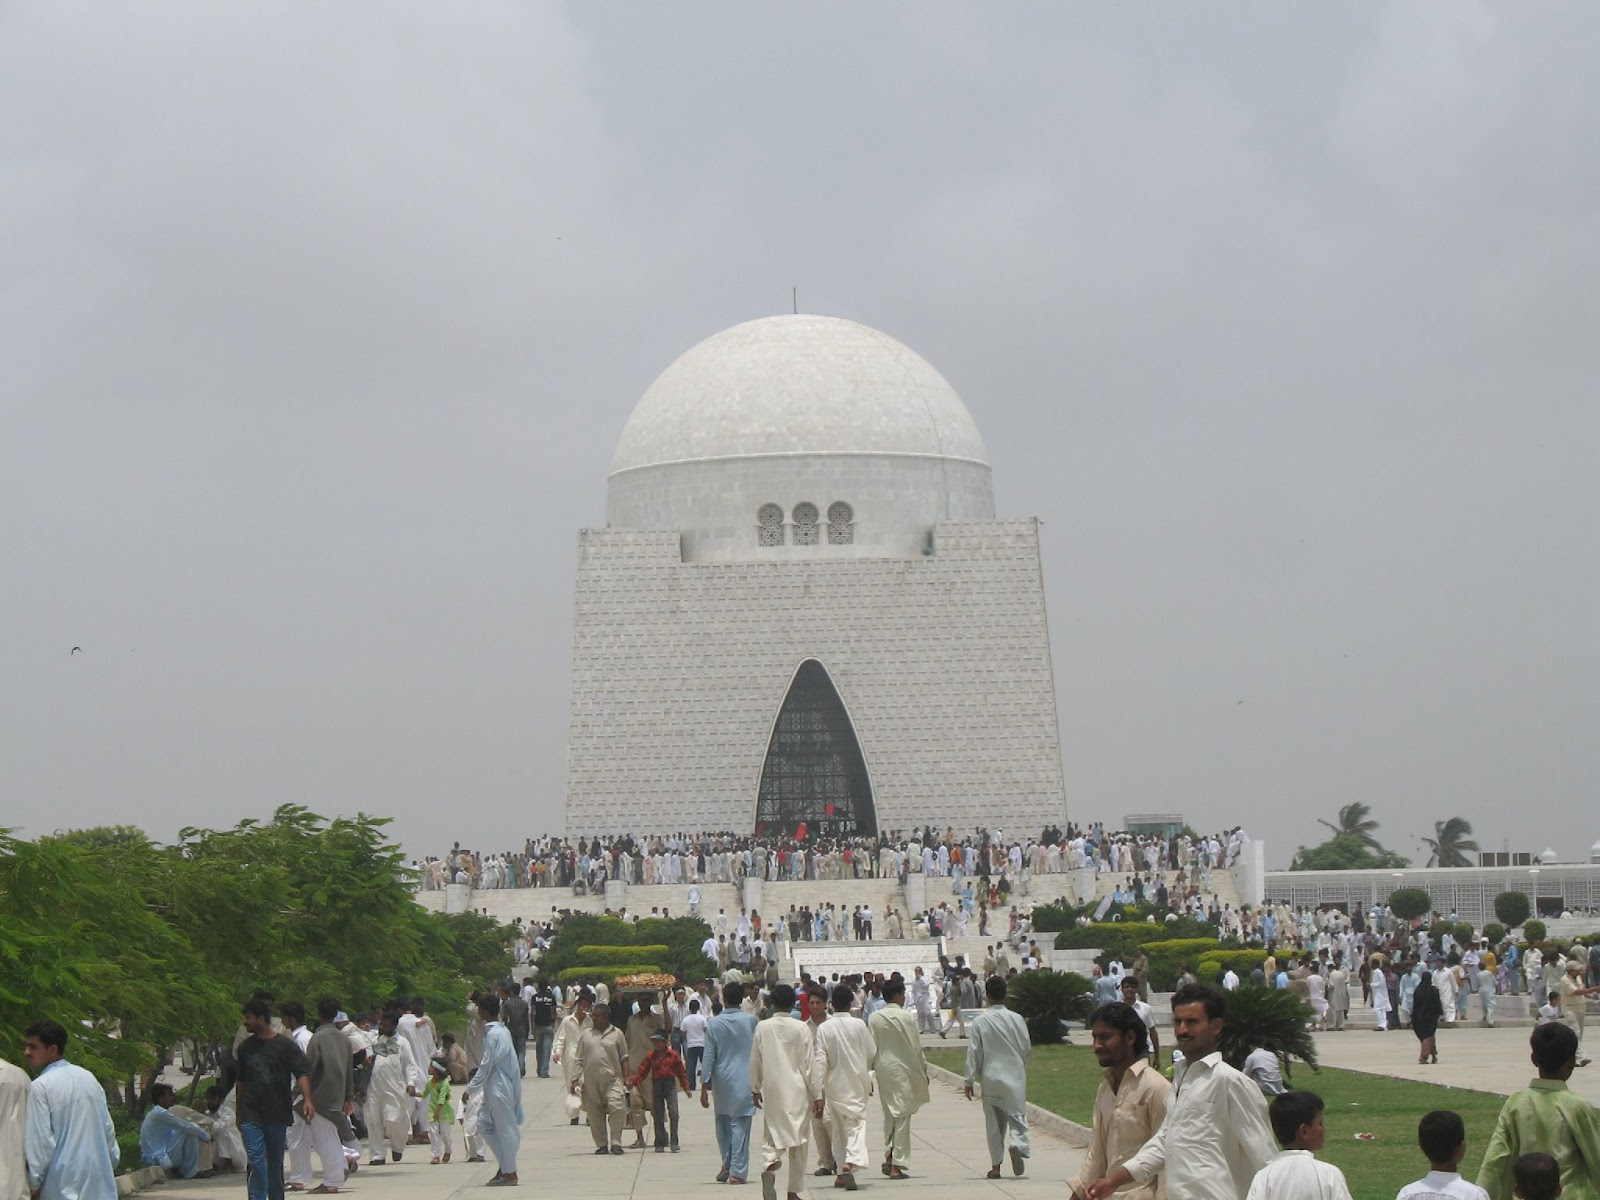 essay on mazar-e-quaid The historical places in pakistan dominate the entire arena because of its rich history and one of the oldest civilizations  mazar-e-quaid clifton beach, karachi.